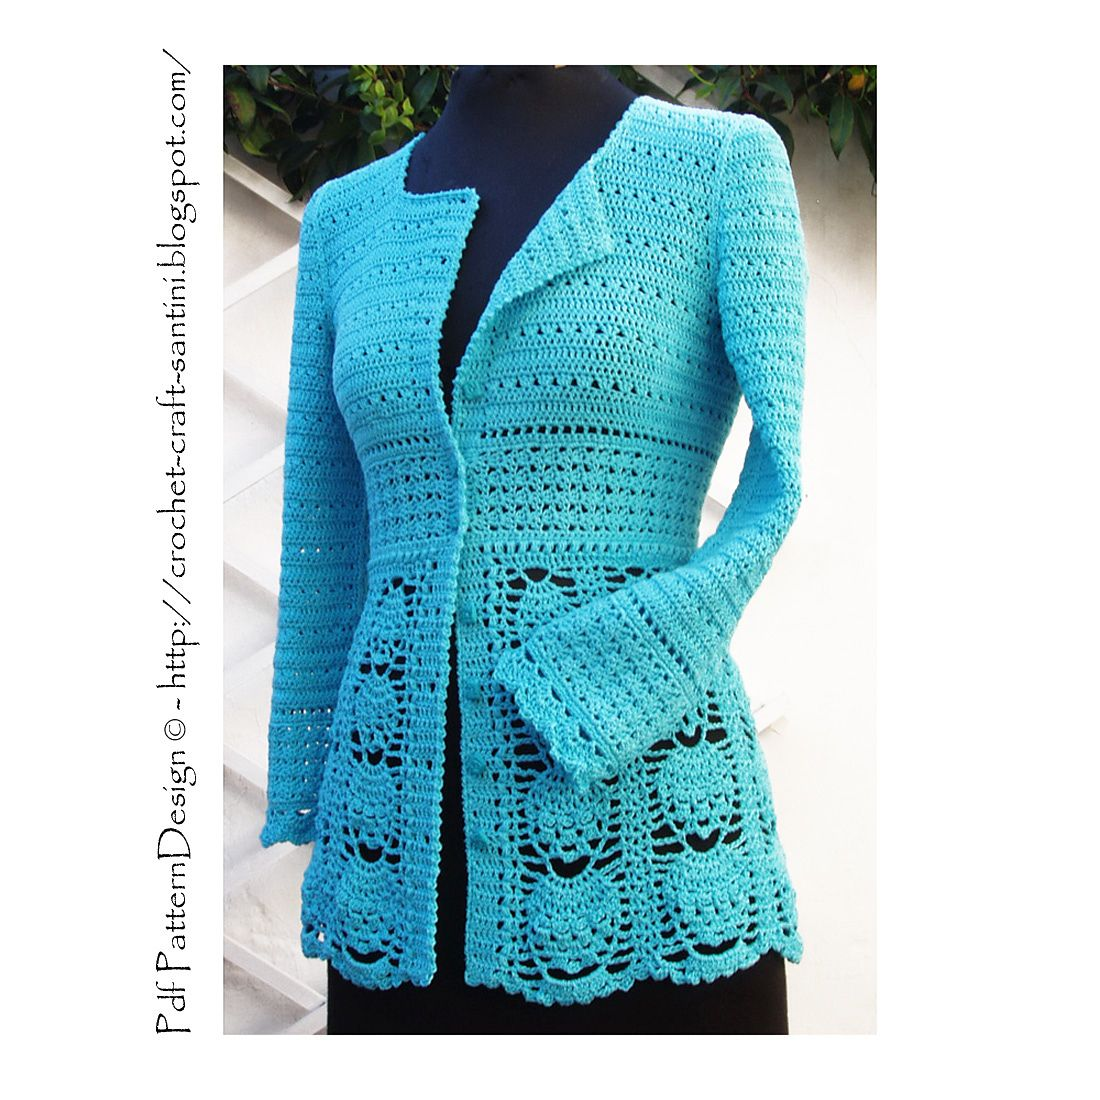 BLUE LACE CARDIGAN pattern by Sophie and Me-Ingunn Santini ...